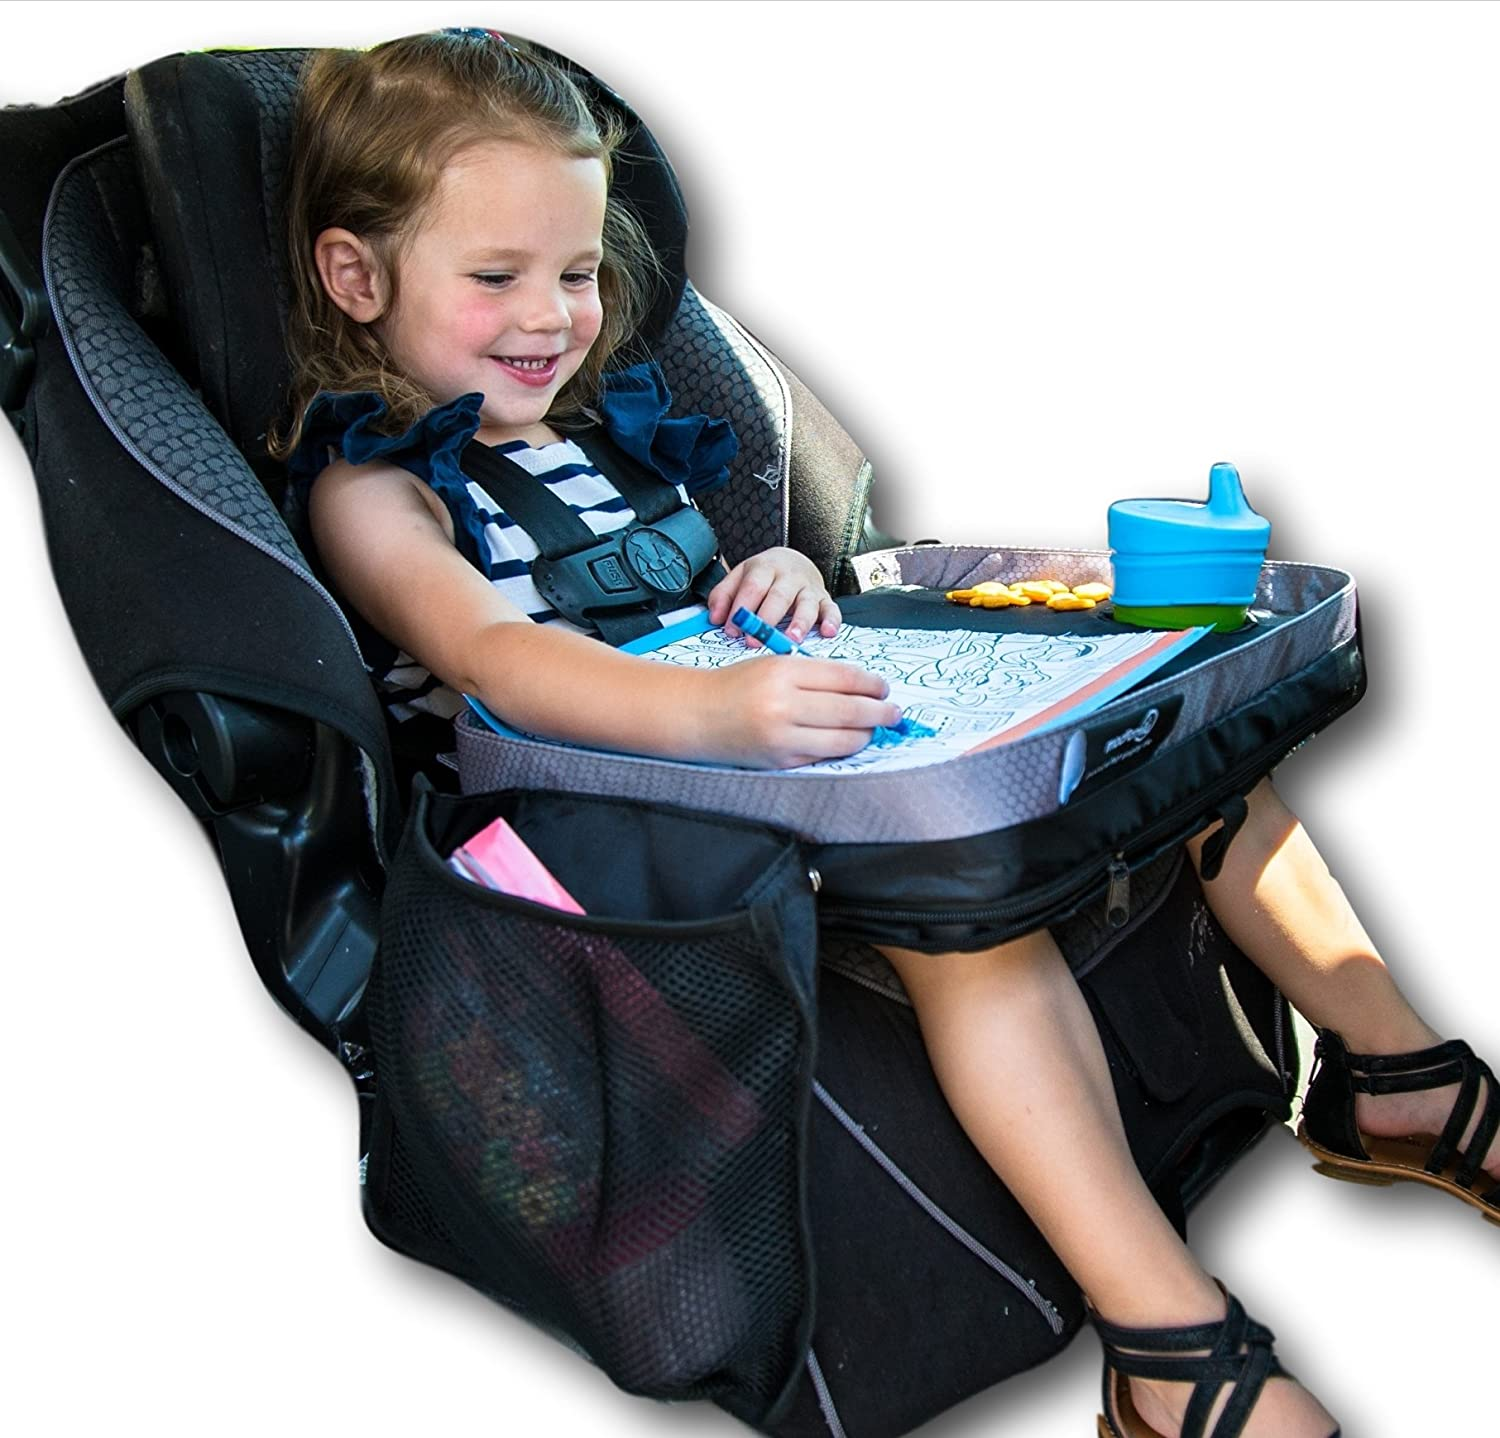 Kids E-Z Travel Lap Tray, Provides Organized Access to Drawing, Snacks and Activities for Hours on-The-go. Includes Bonus Printable Travel Games, Patent Pending (Blue) Modfamily.com MOD-7